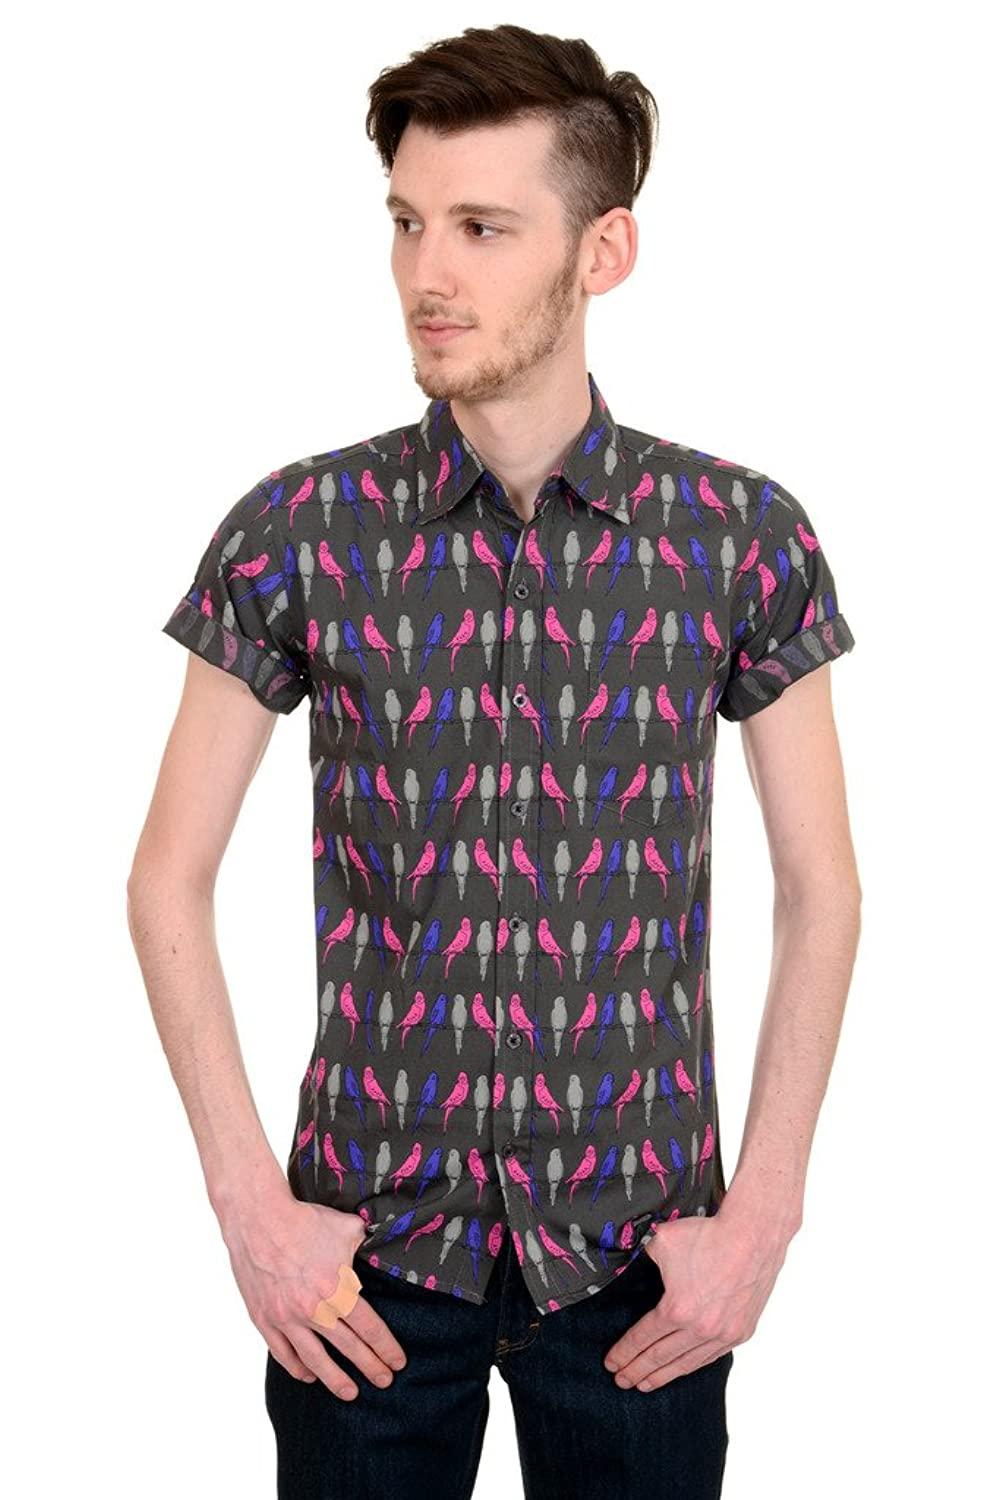 Men's Vintage Style Shirts Mens Run & Fly 60s 70s Indie Preppy Retro Budgies On A Perch Short Sleeve Shirt $34.95 AT vintagedancer.com